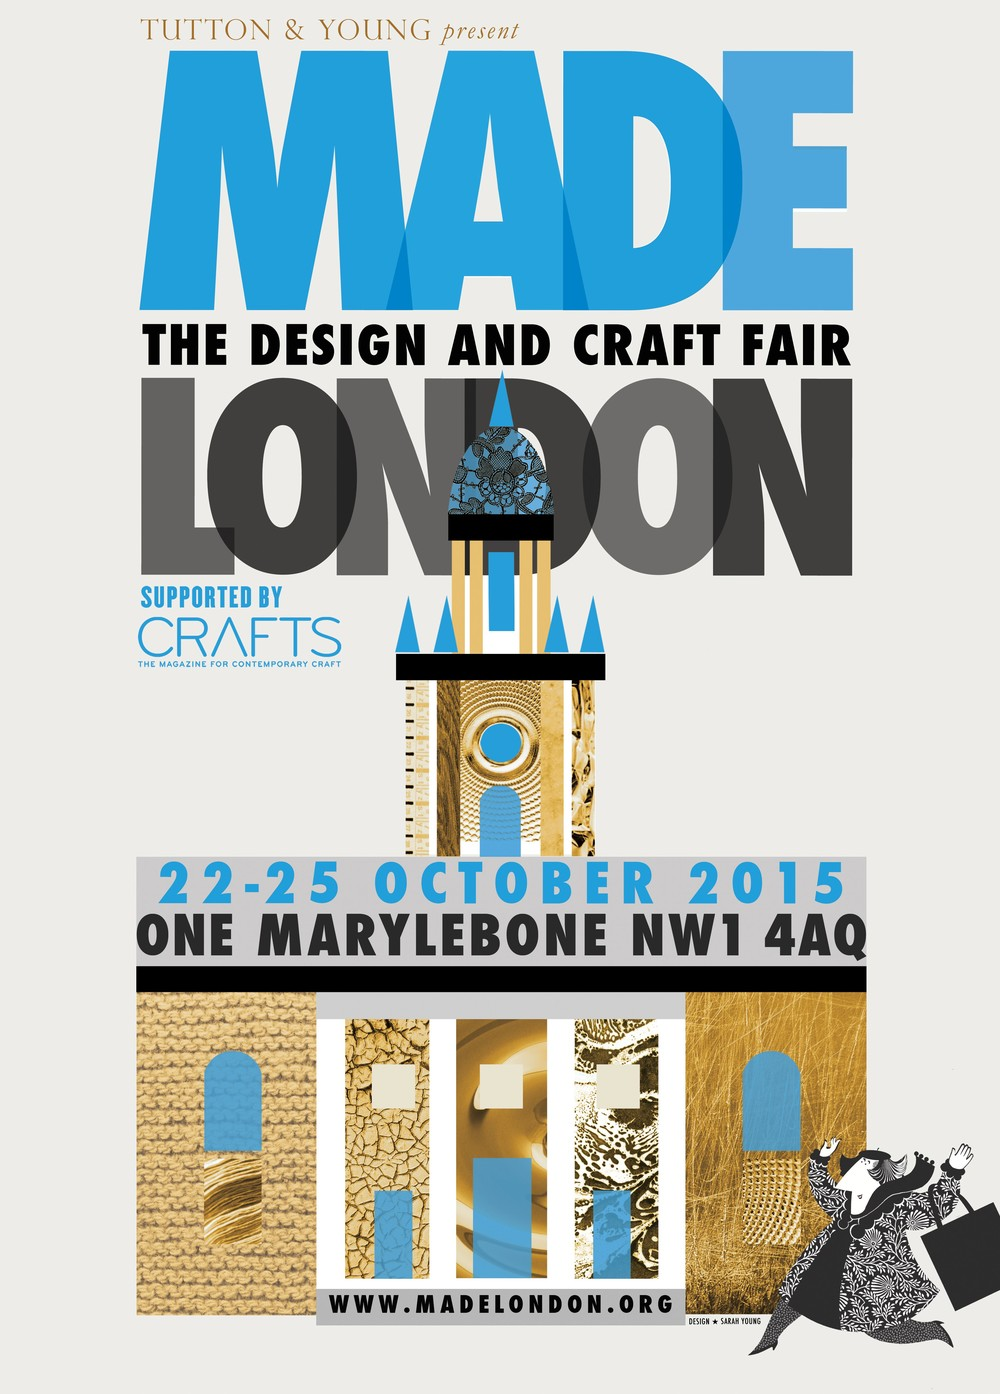 Made london 2015 e-flyer